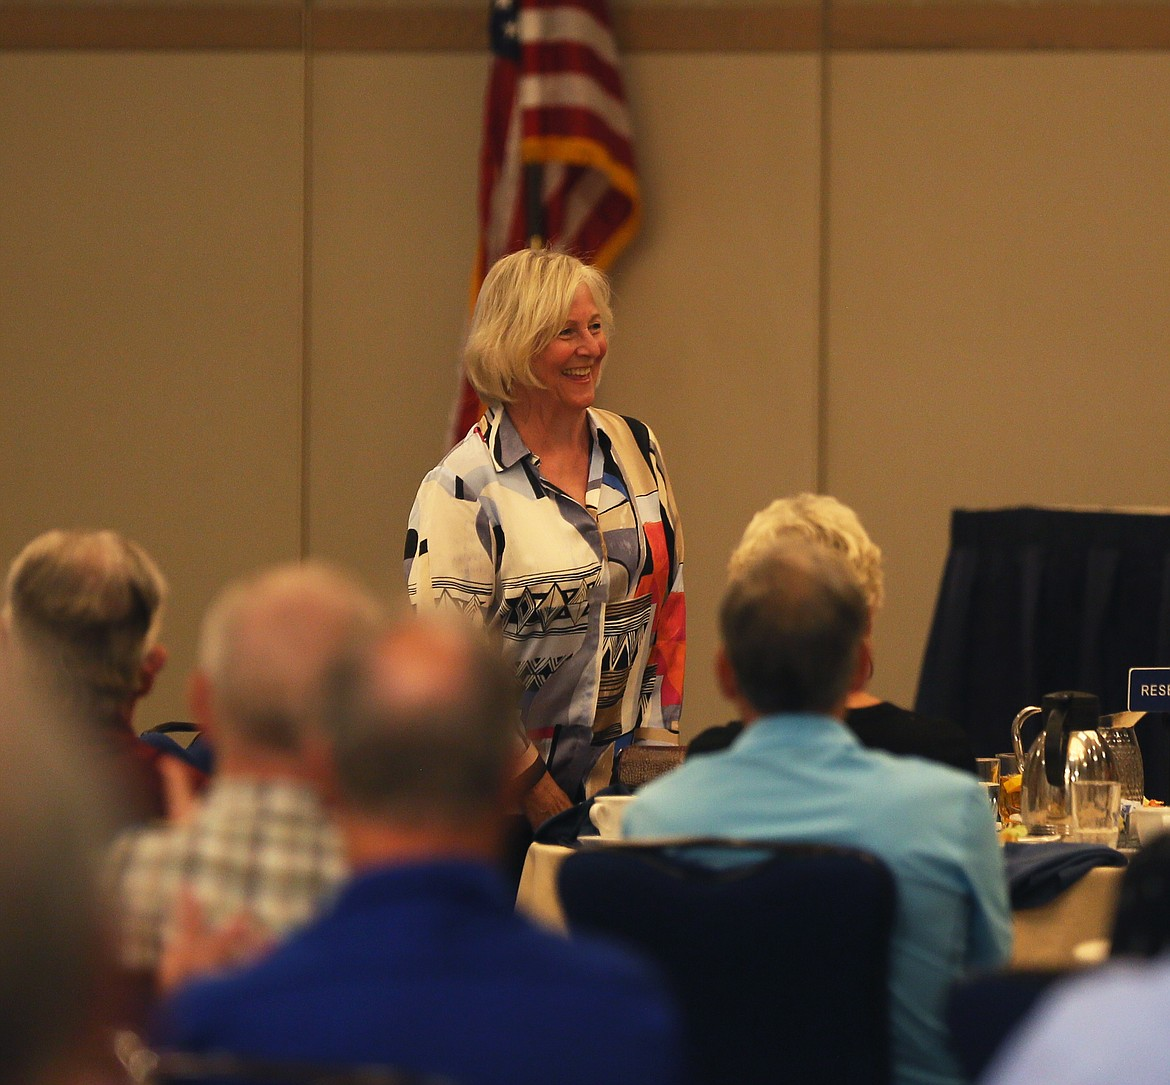 Vicki Risch, a former first lady of Idaho and Sen. Jim Risch's wife of 52 years, says hello to Rotary members during a meeting in The Coeur d'Alene Resort on Friday. (DEVIN WEEKS/Press)